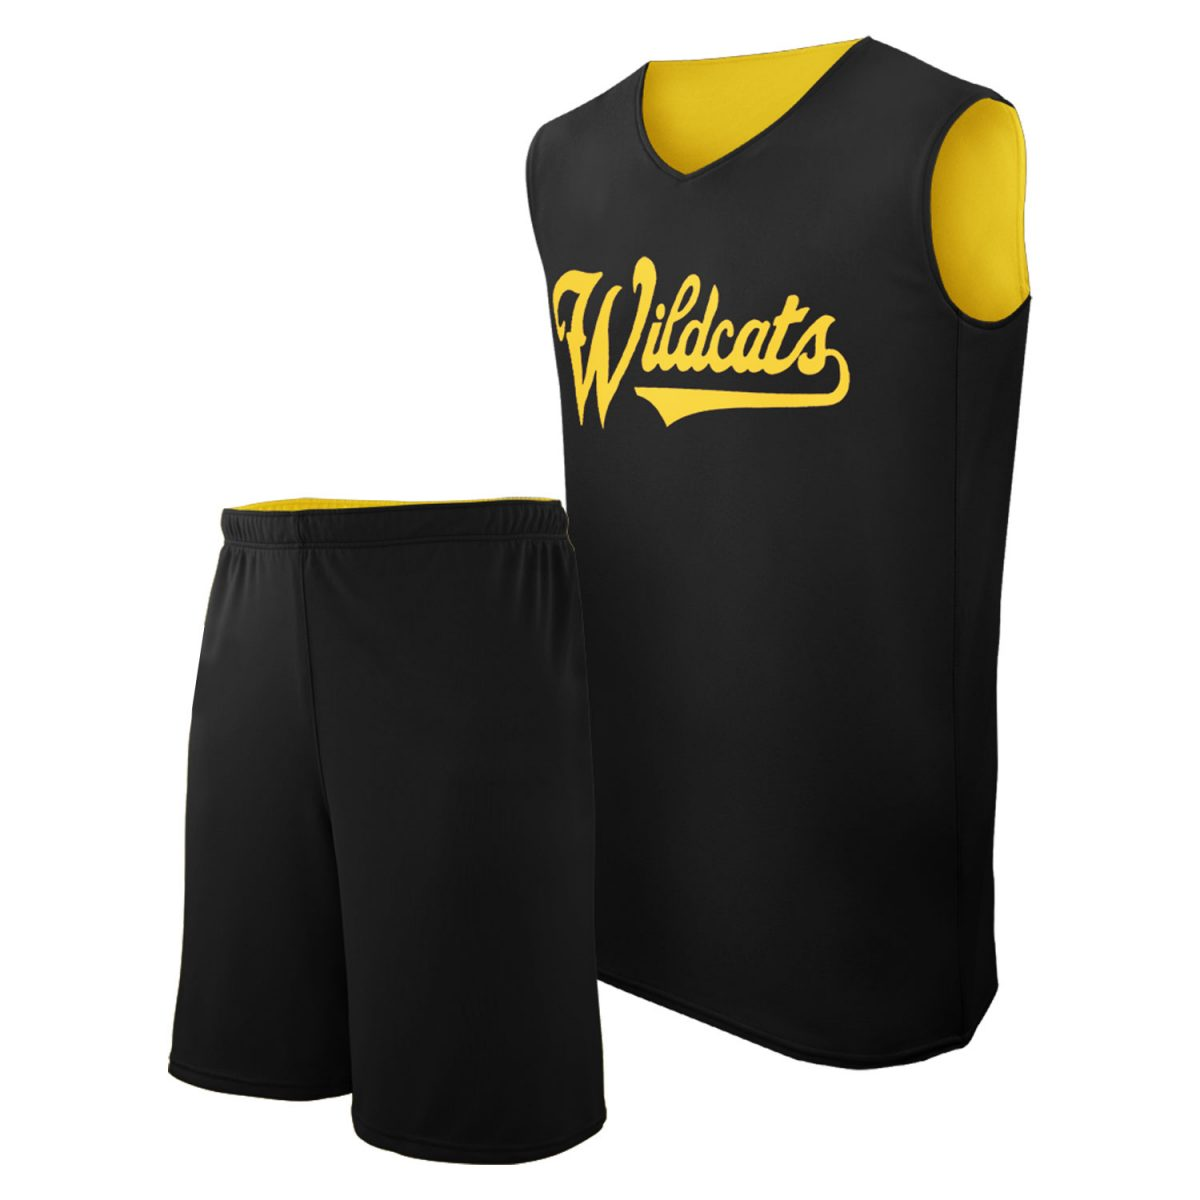 Boys Basketball Uniforms Manufacturers in Saharanpur